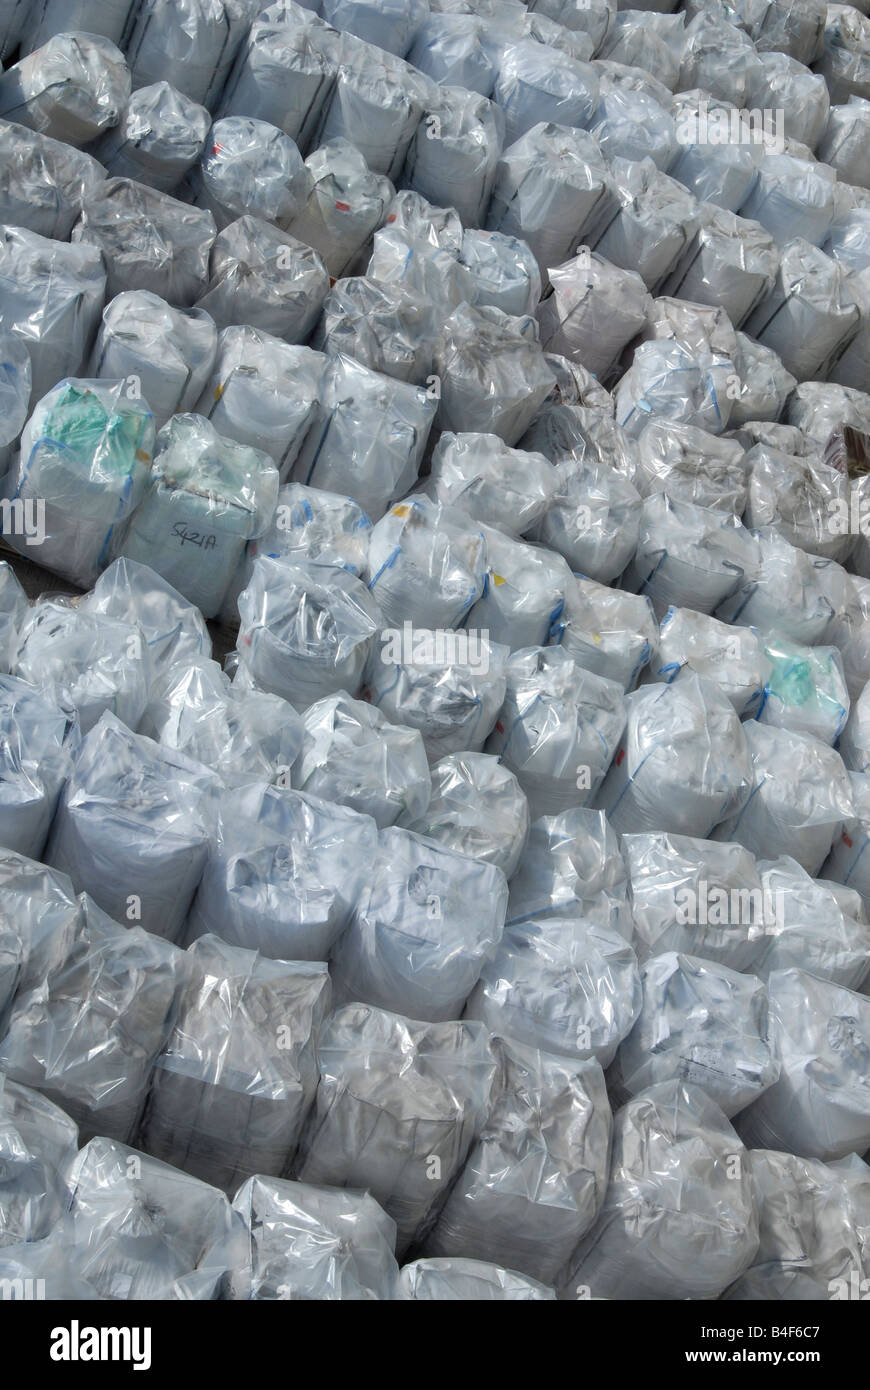 Bales of rigid plastic waste feedstock awaiting reprocessing at a plastics recycling plant - Stock Image